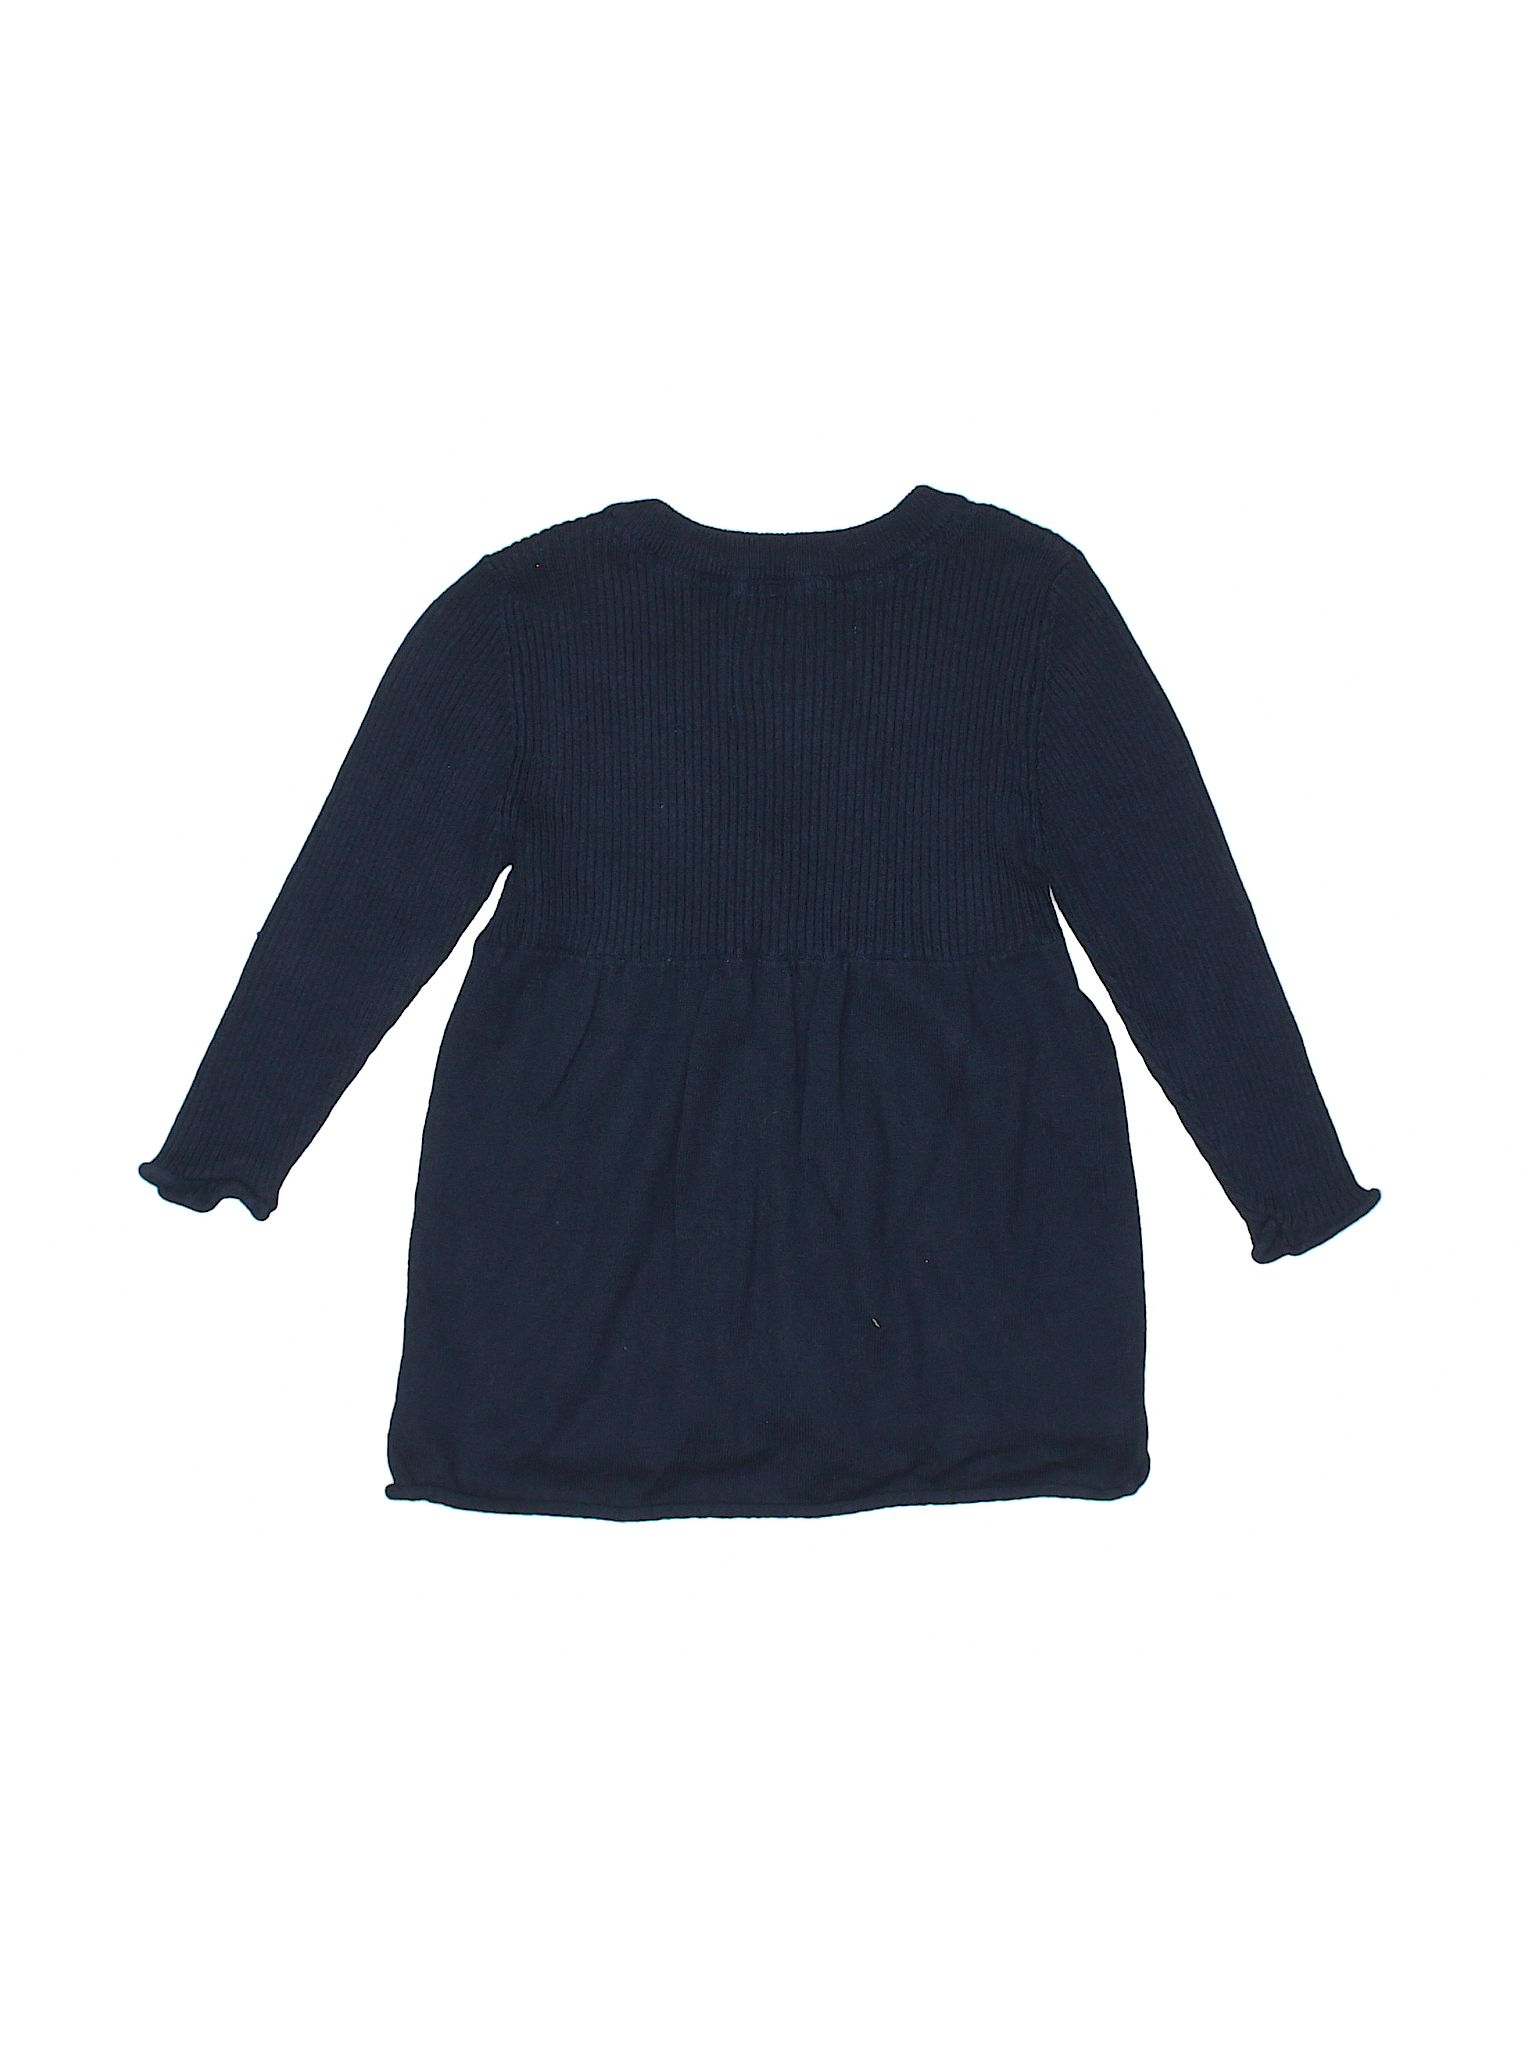 Limited Too Cardigan Dark Blue Girls Tops  31191184